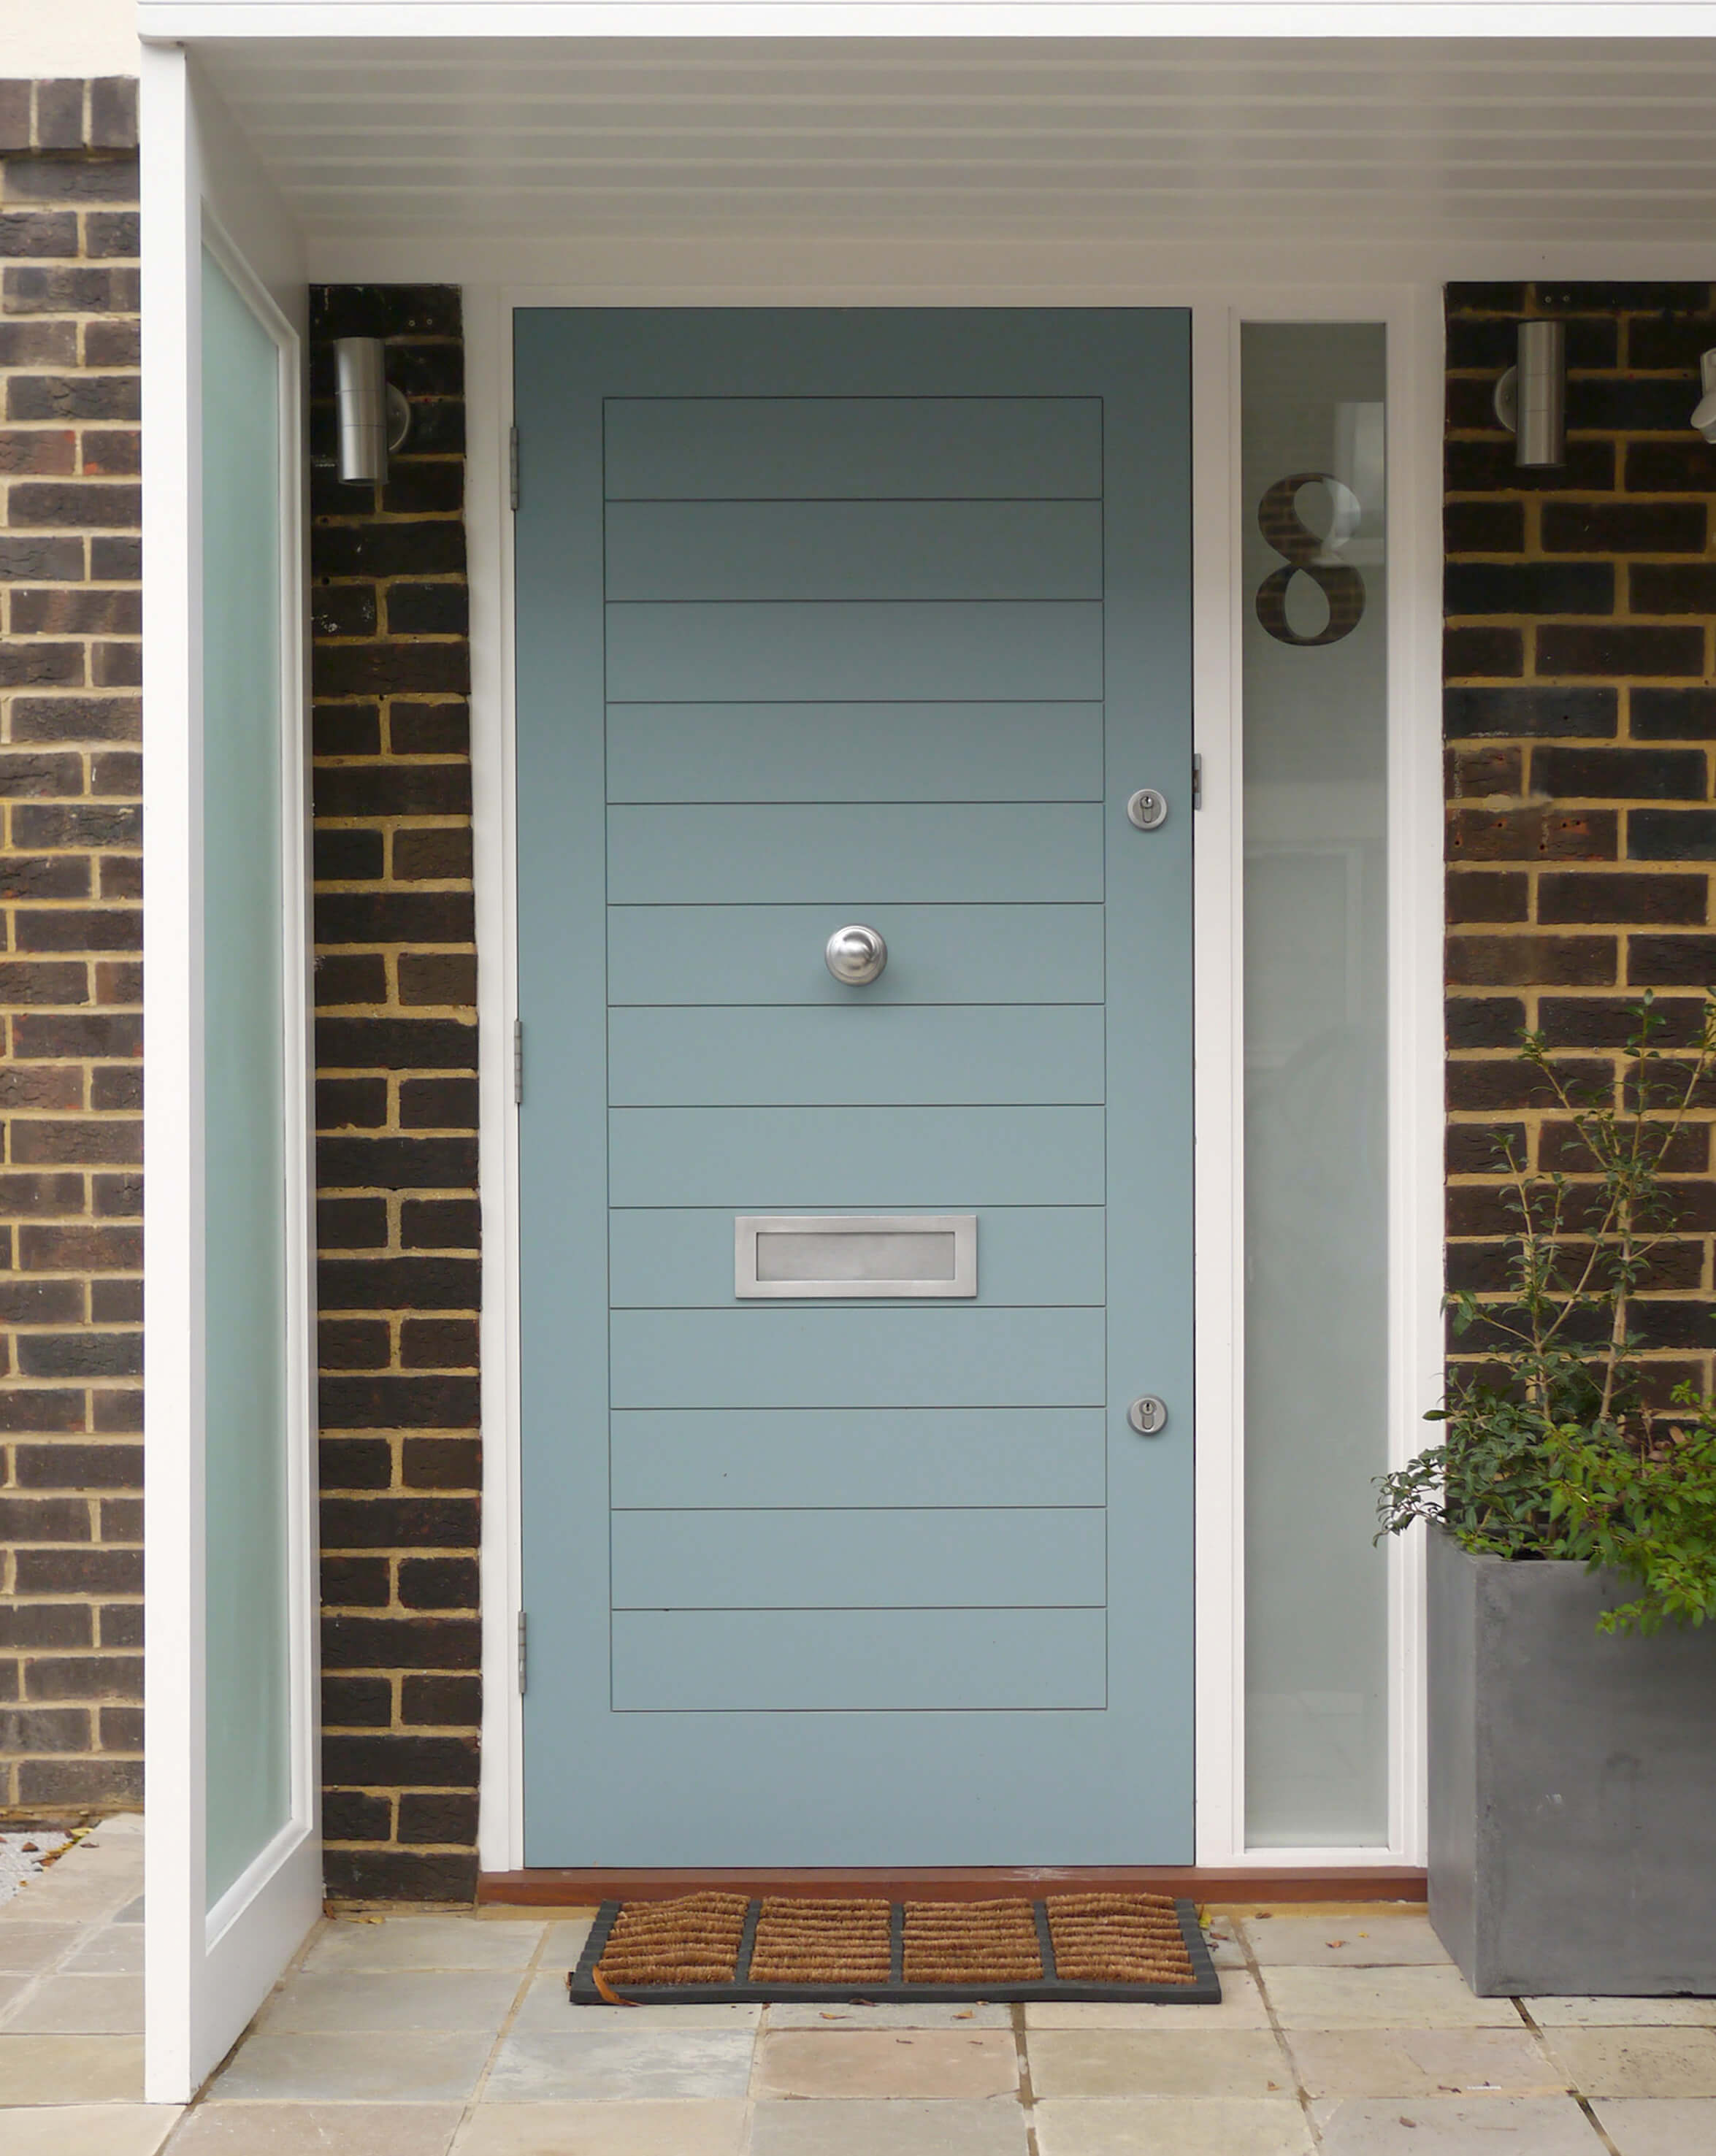 Modern front door design london door company - Modern front door designs ...